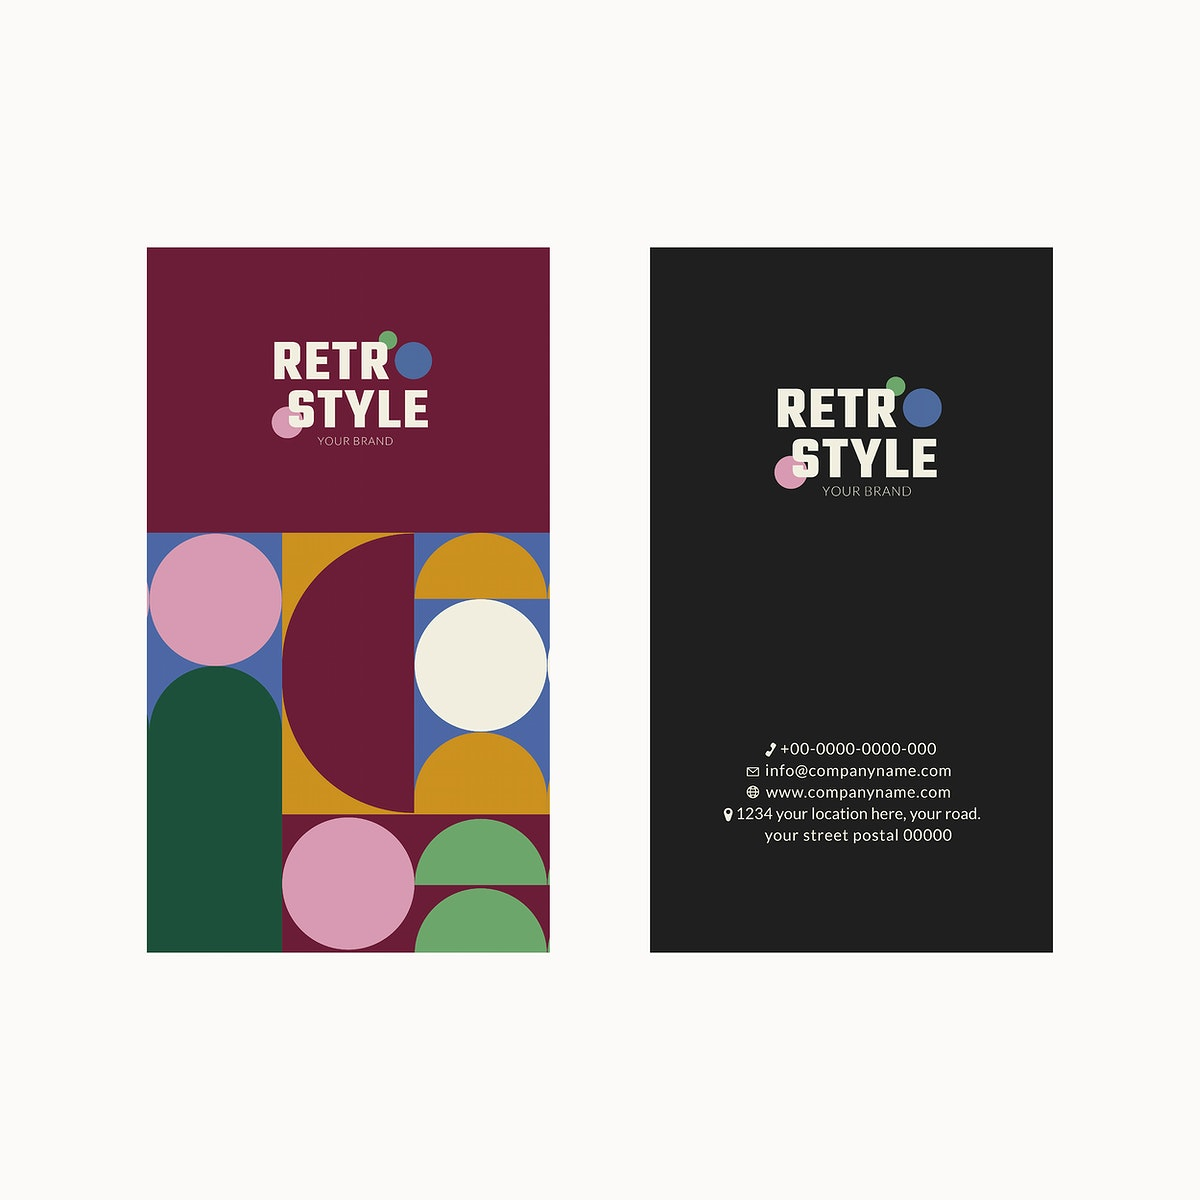 Editable business card template psd in purple retro style for fashion and beauty brands